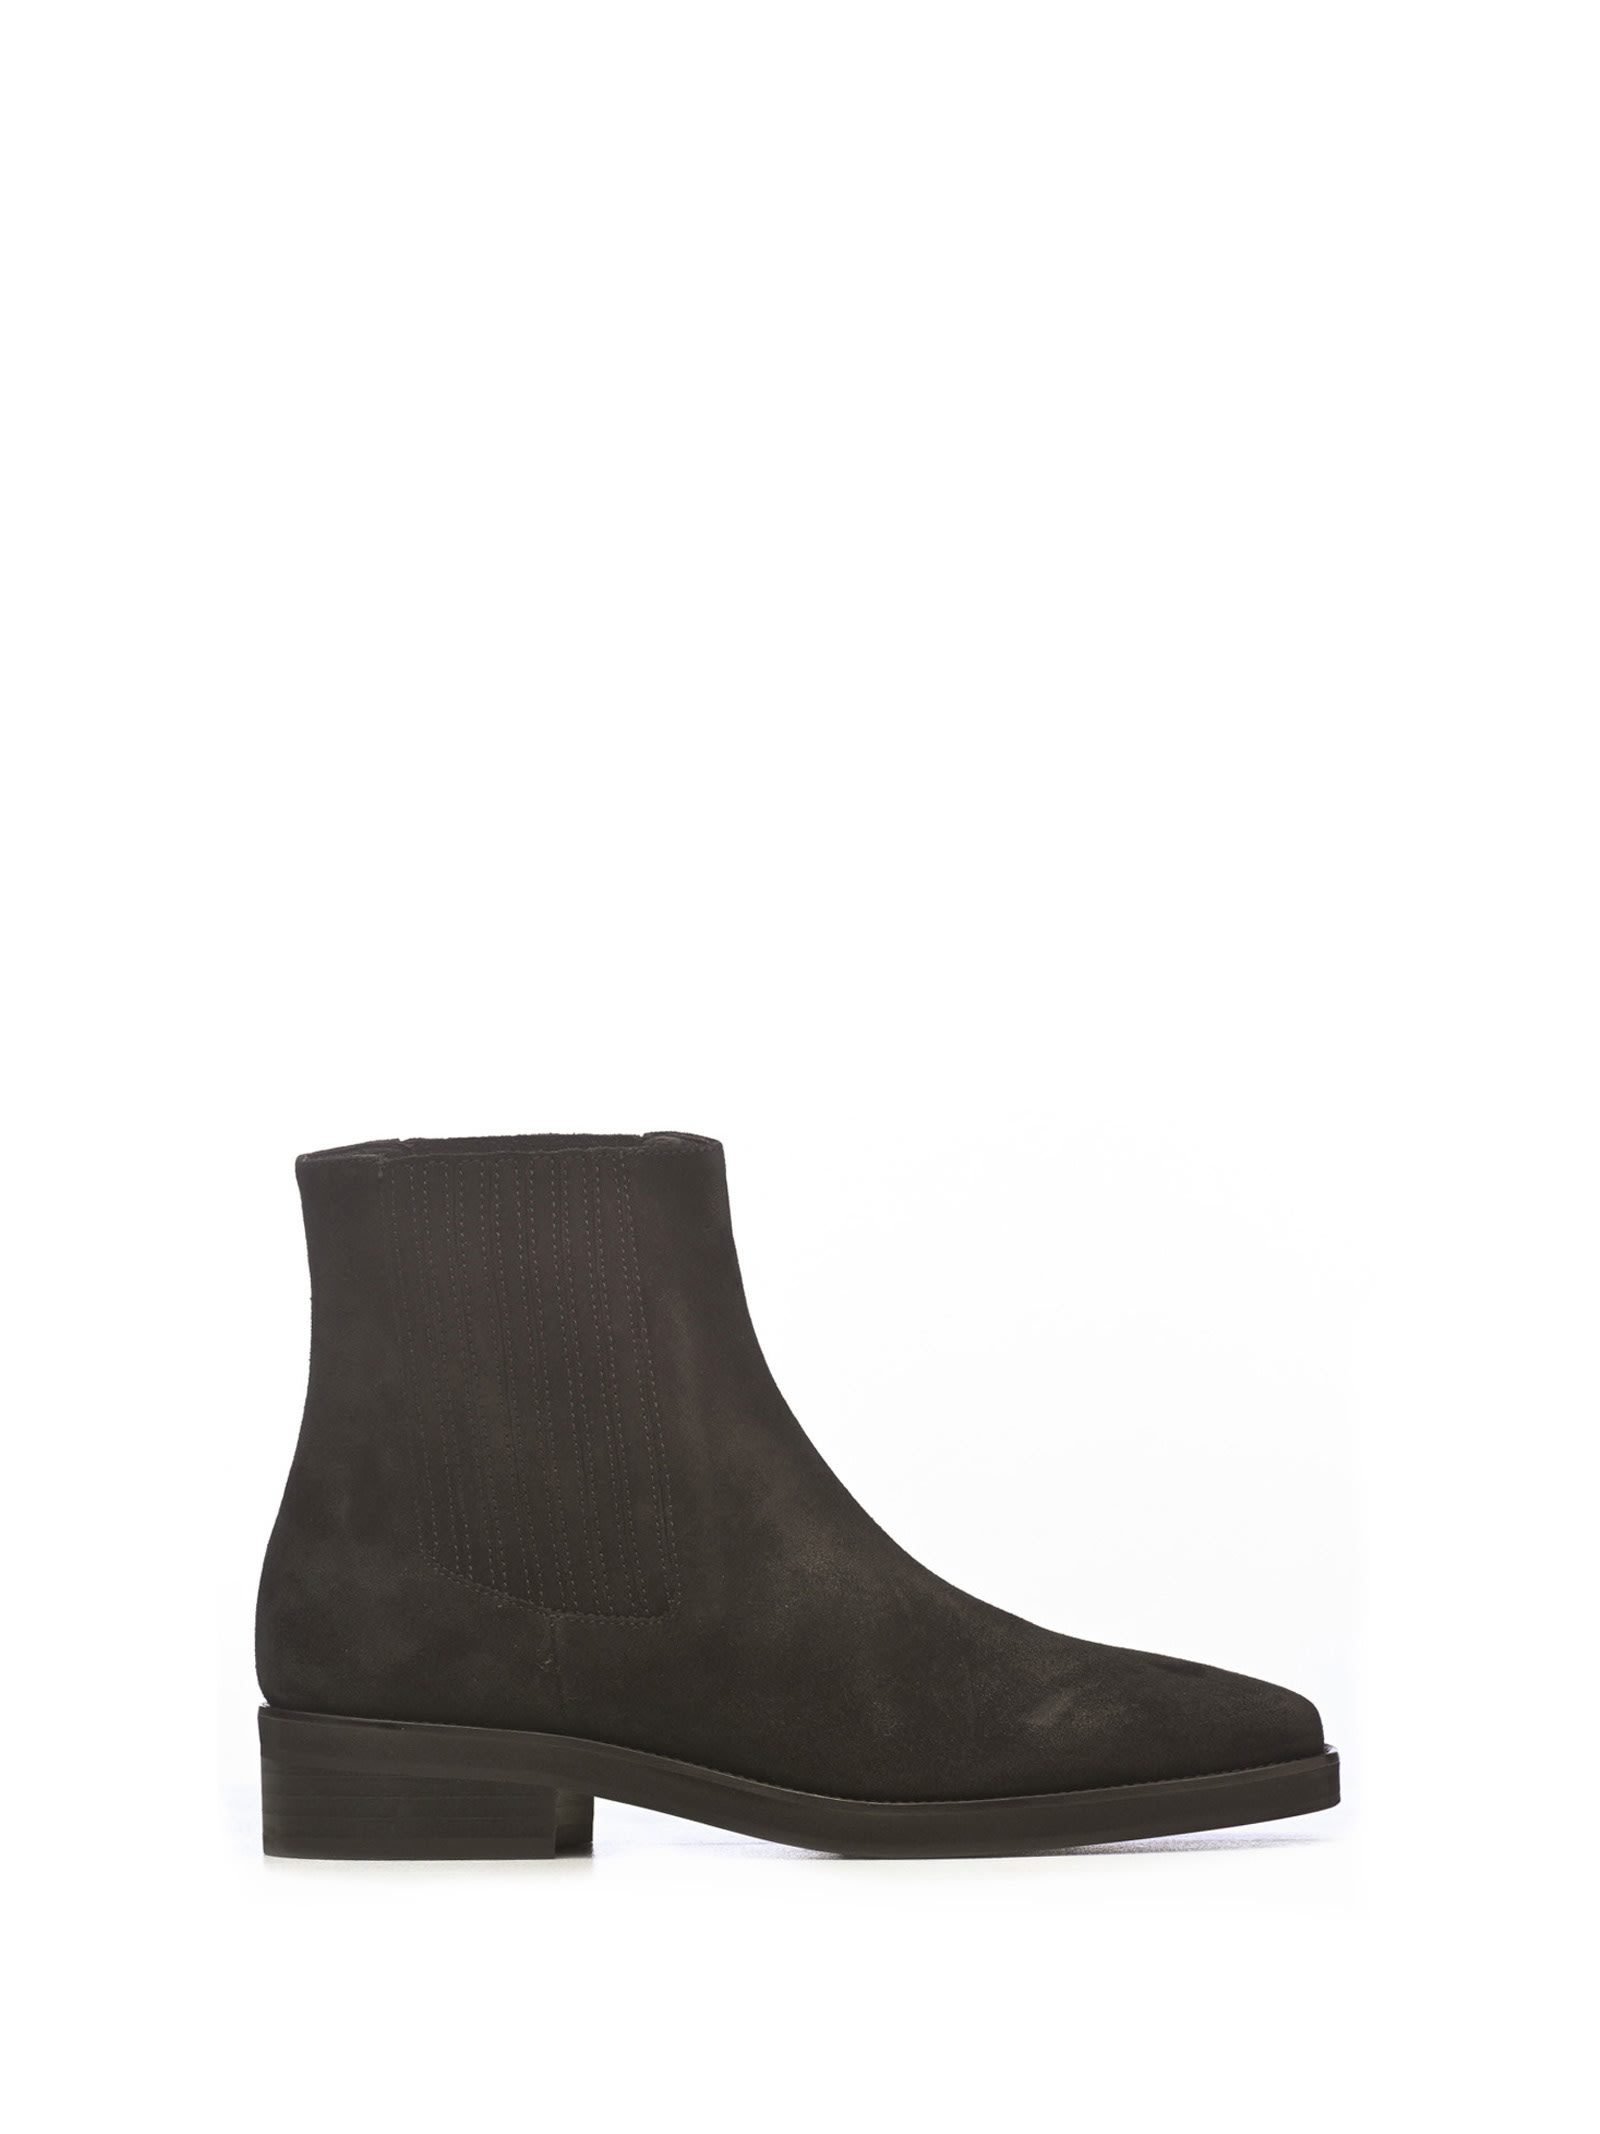 Janet & Janet Janet & janet Suede Ankle Boots